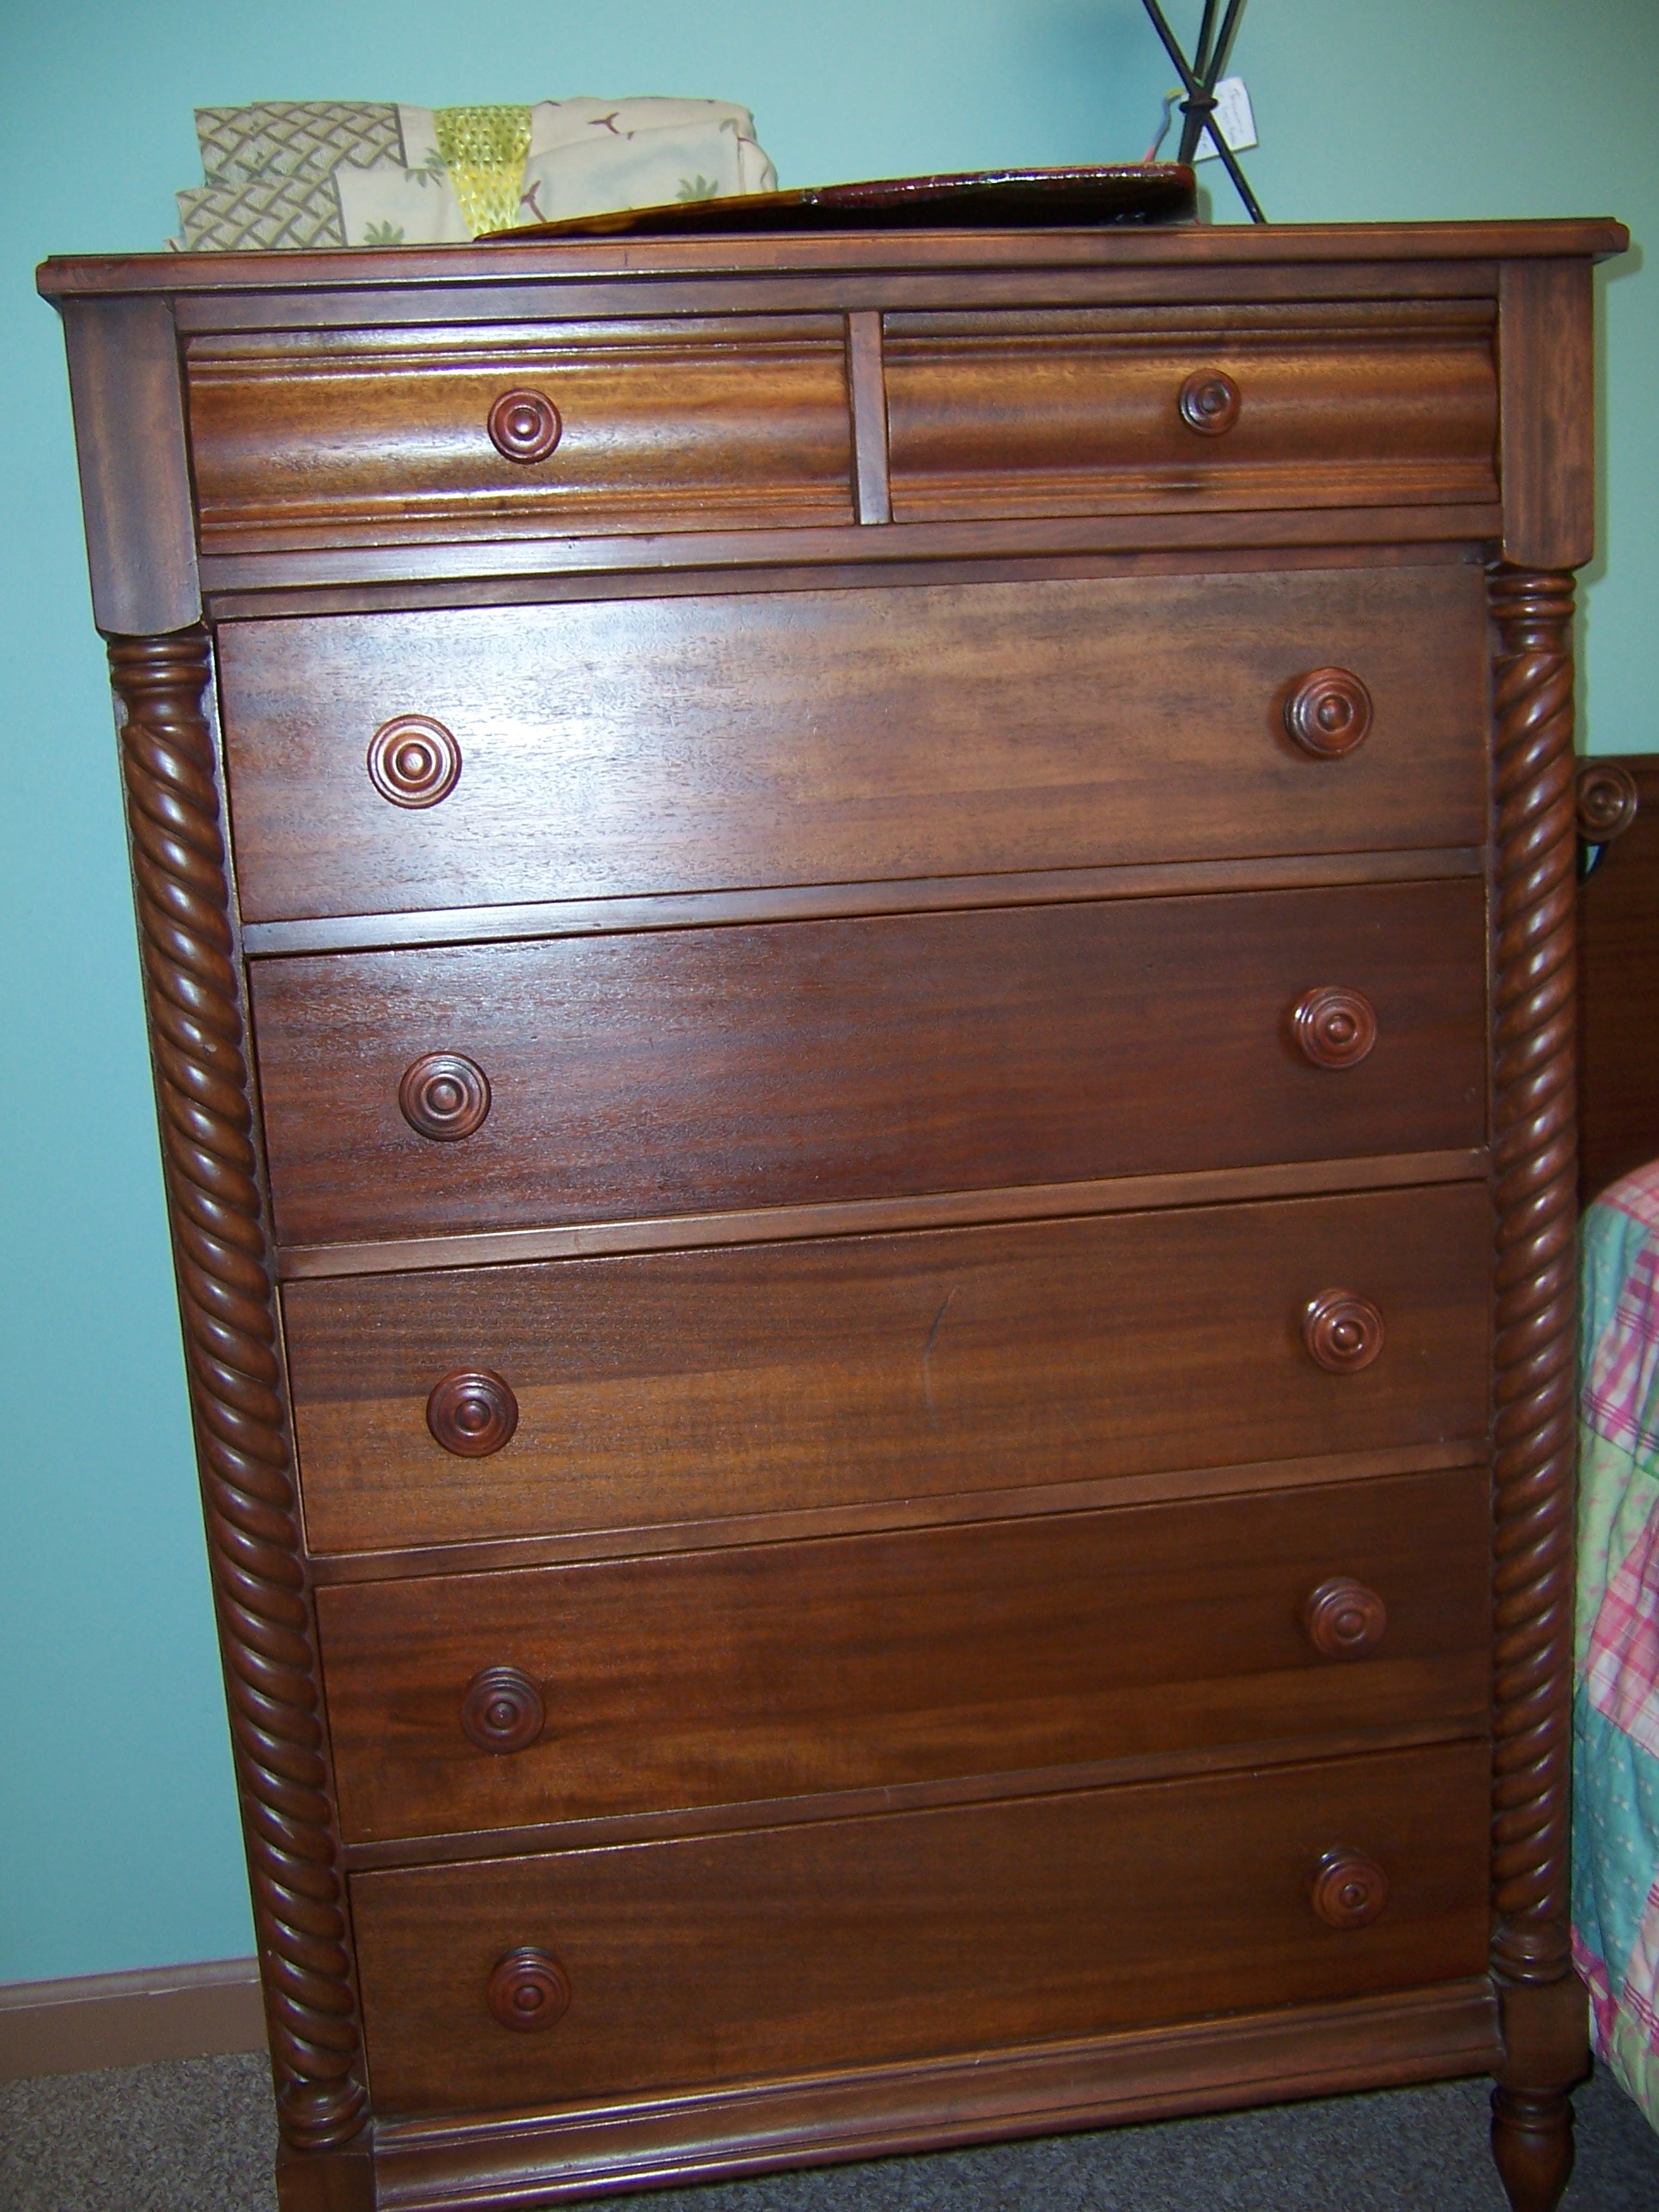 Vanity dresser chest of drawers bed for sale classifieds Antique bedroom dressers and chests